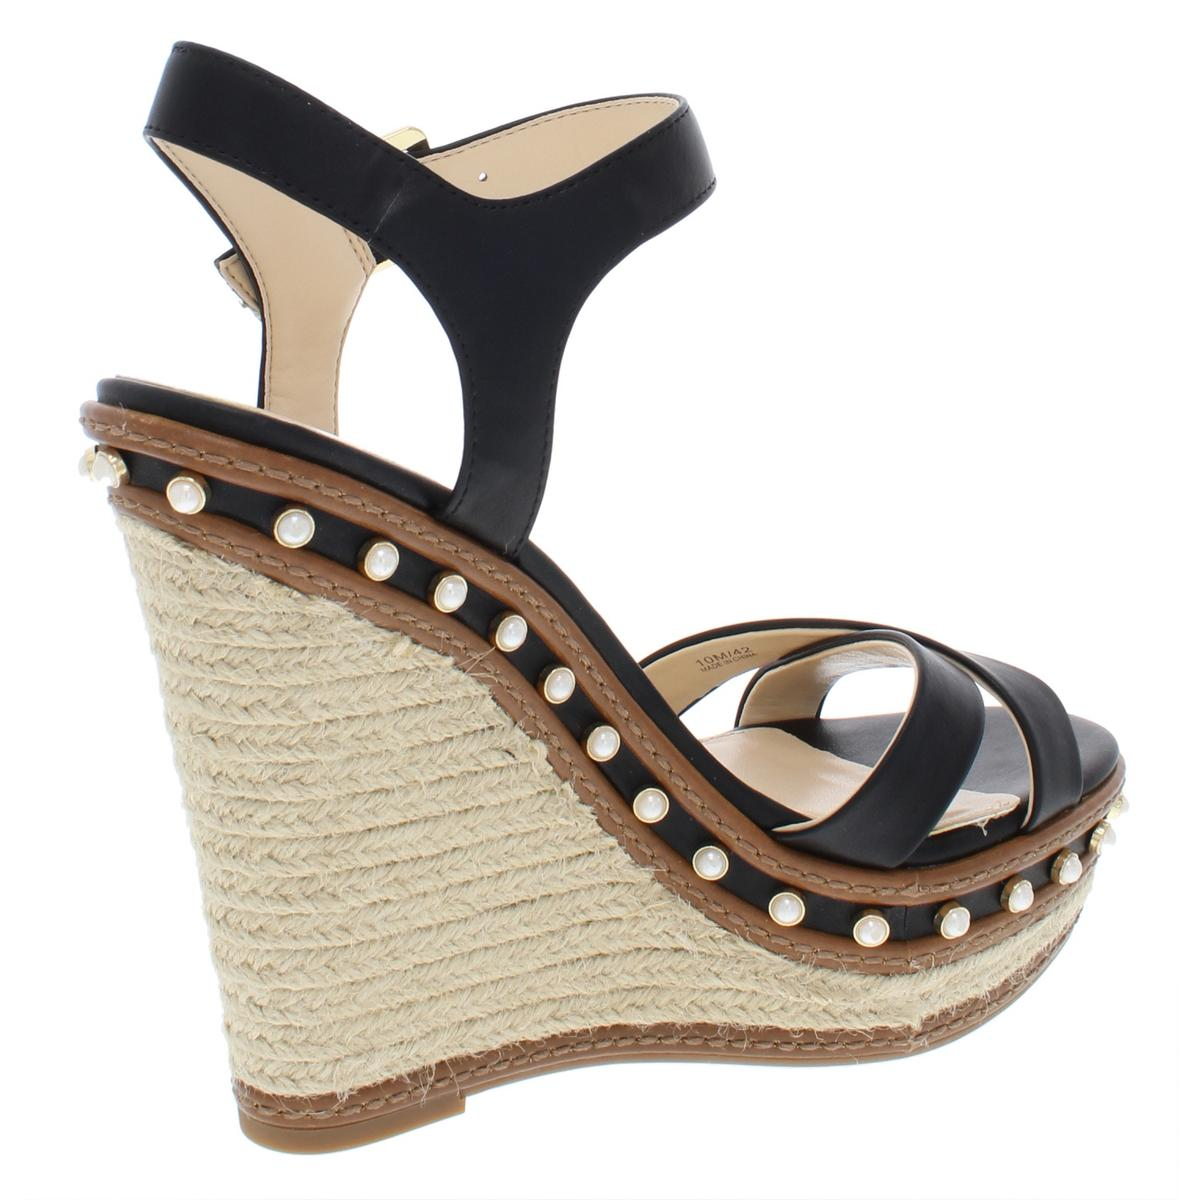 Jessica-Simpson-Womens-Aeralin-Leather-Espadrilles-Wedges-Shoes-BHFO-6006 thumbnail 4